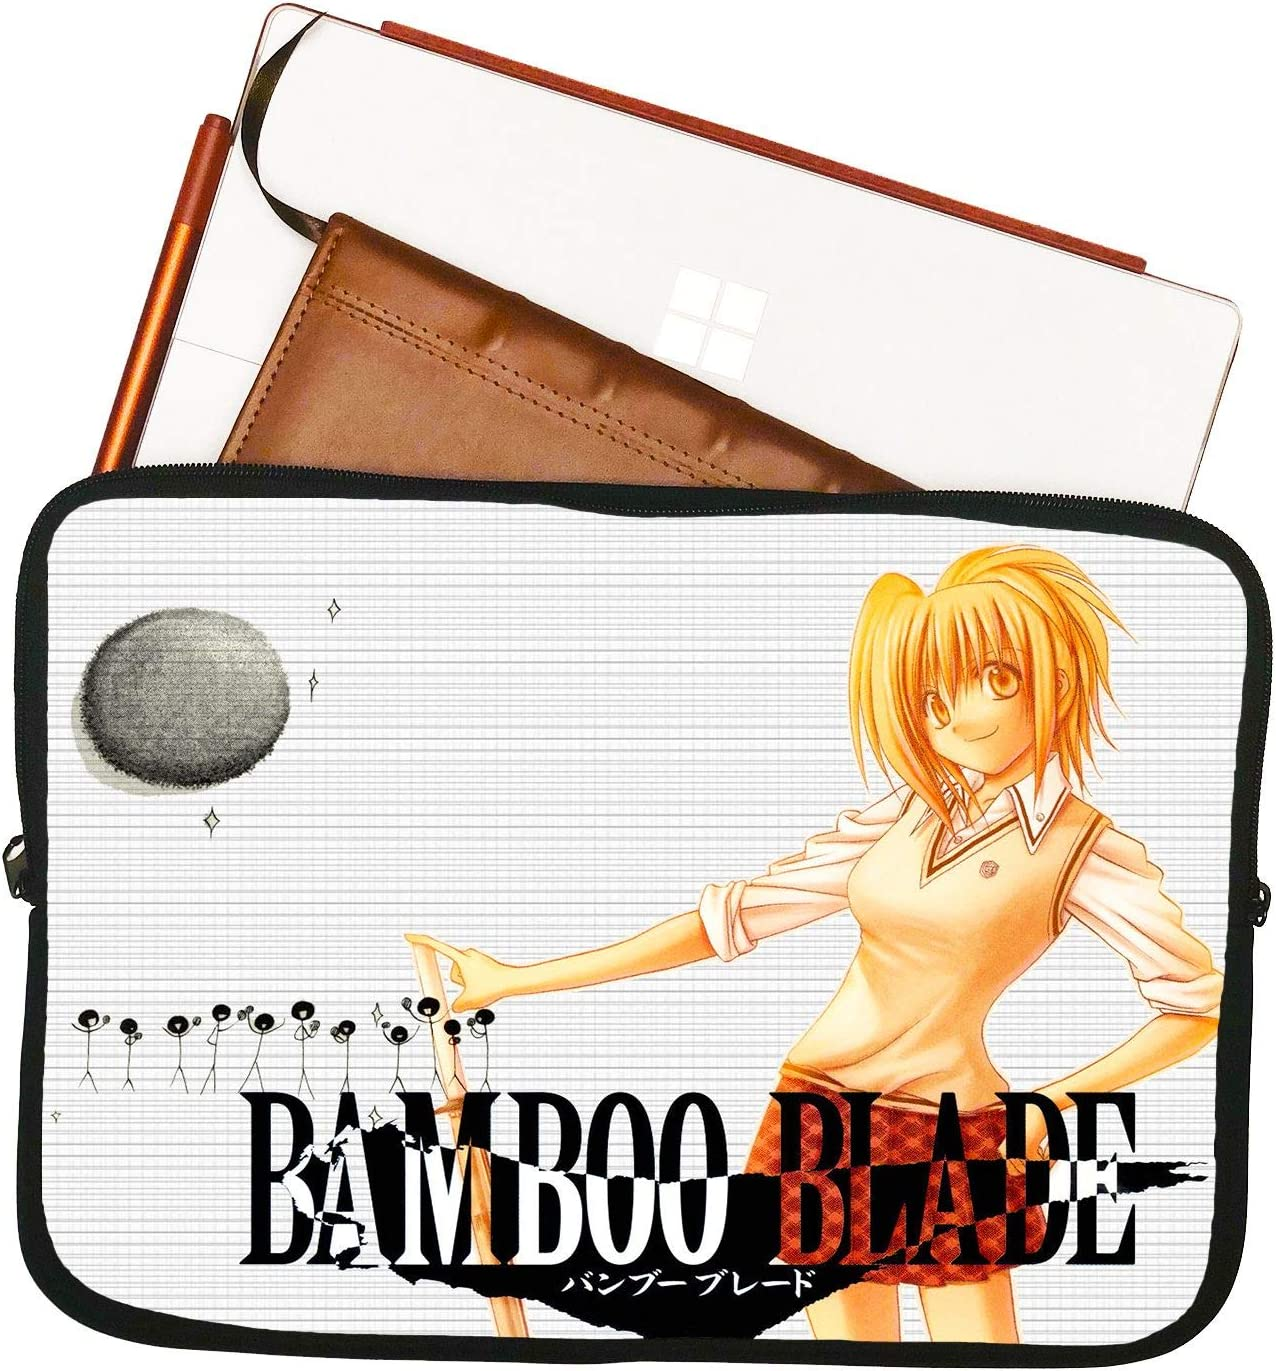 Bamboo Blade Anime Laptop Sleeve Bag Mousepad Surface Case 13 13.3 Anime Computer Bag Laptop Sleeve Tablet Laptop//Tablet Water Repellent Neoprene Cushioned Case